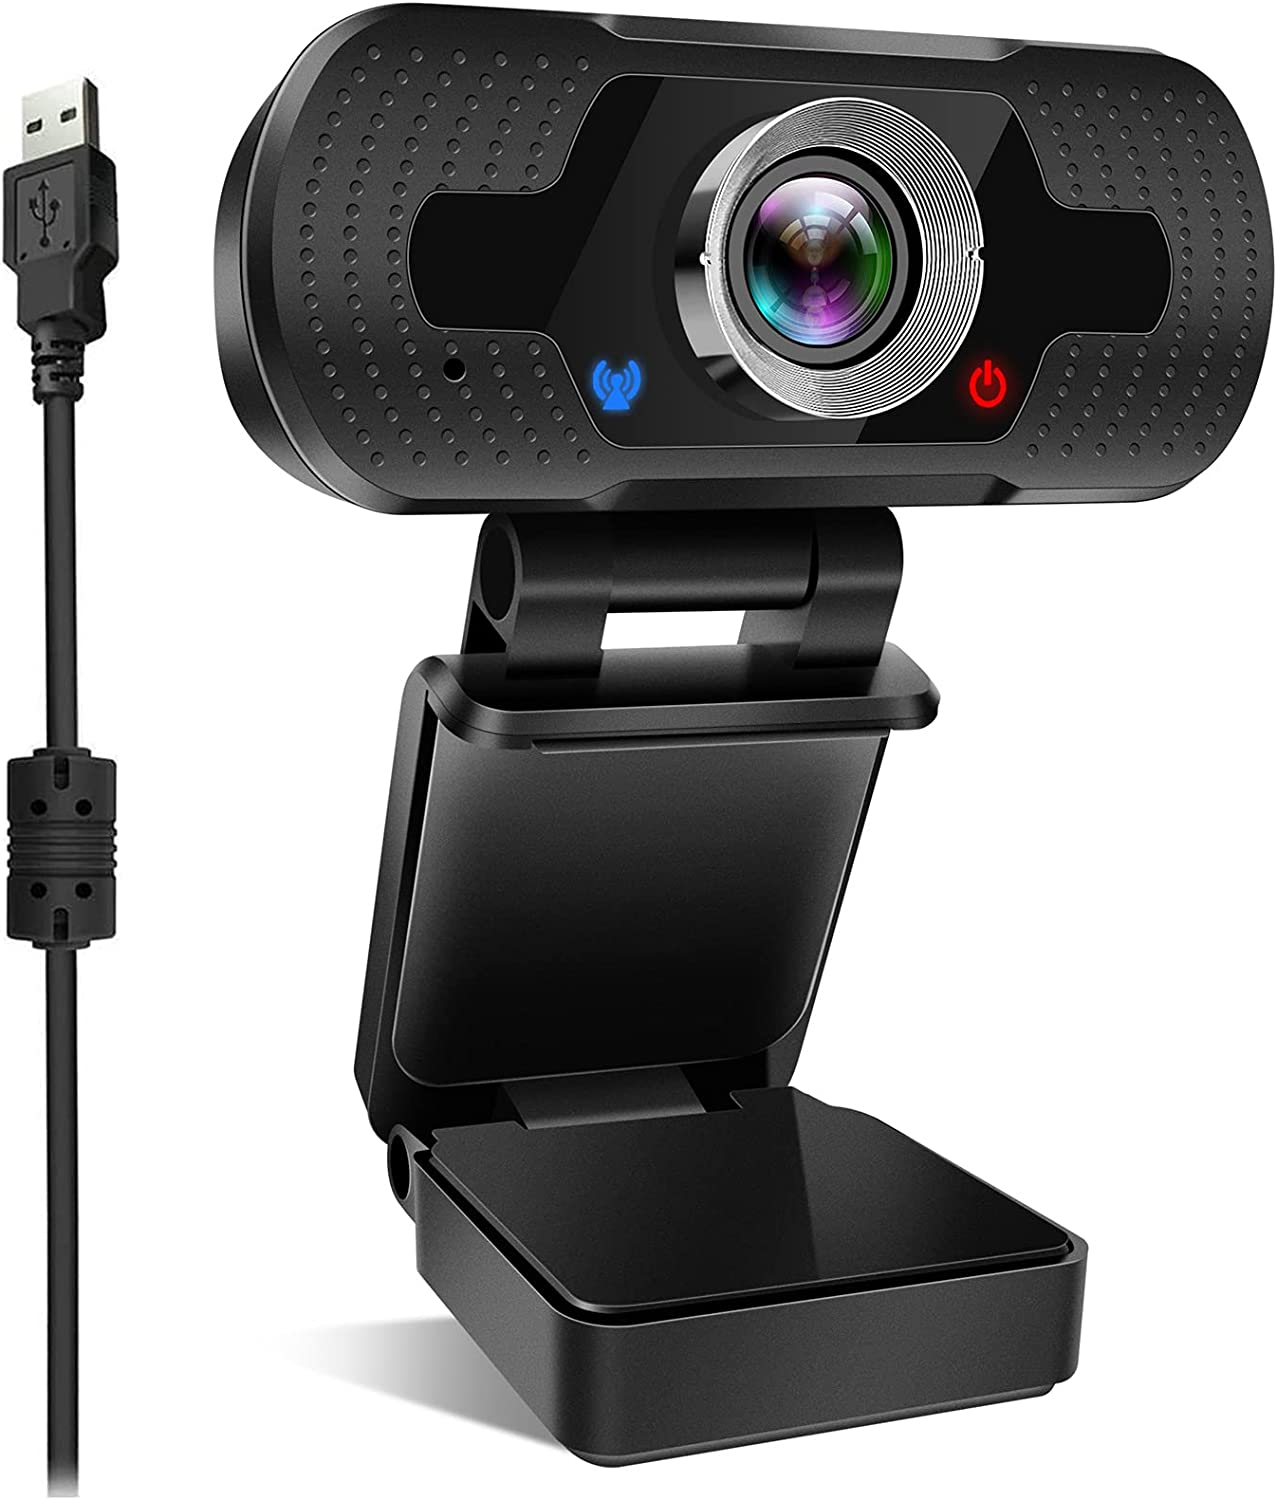 Webcam, USB Camera with Microphone For PC Autofocus Plug & Play Built-in Mic Full Ultra HD 1080P Web Camera Video Cam For Youtube,Skype, FaceTime,Hangouts,WebEx,Desktop,Computer/Mac/Laptop/Macbook